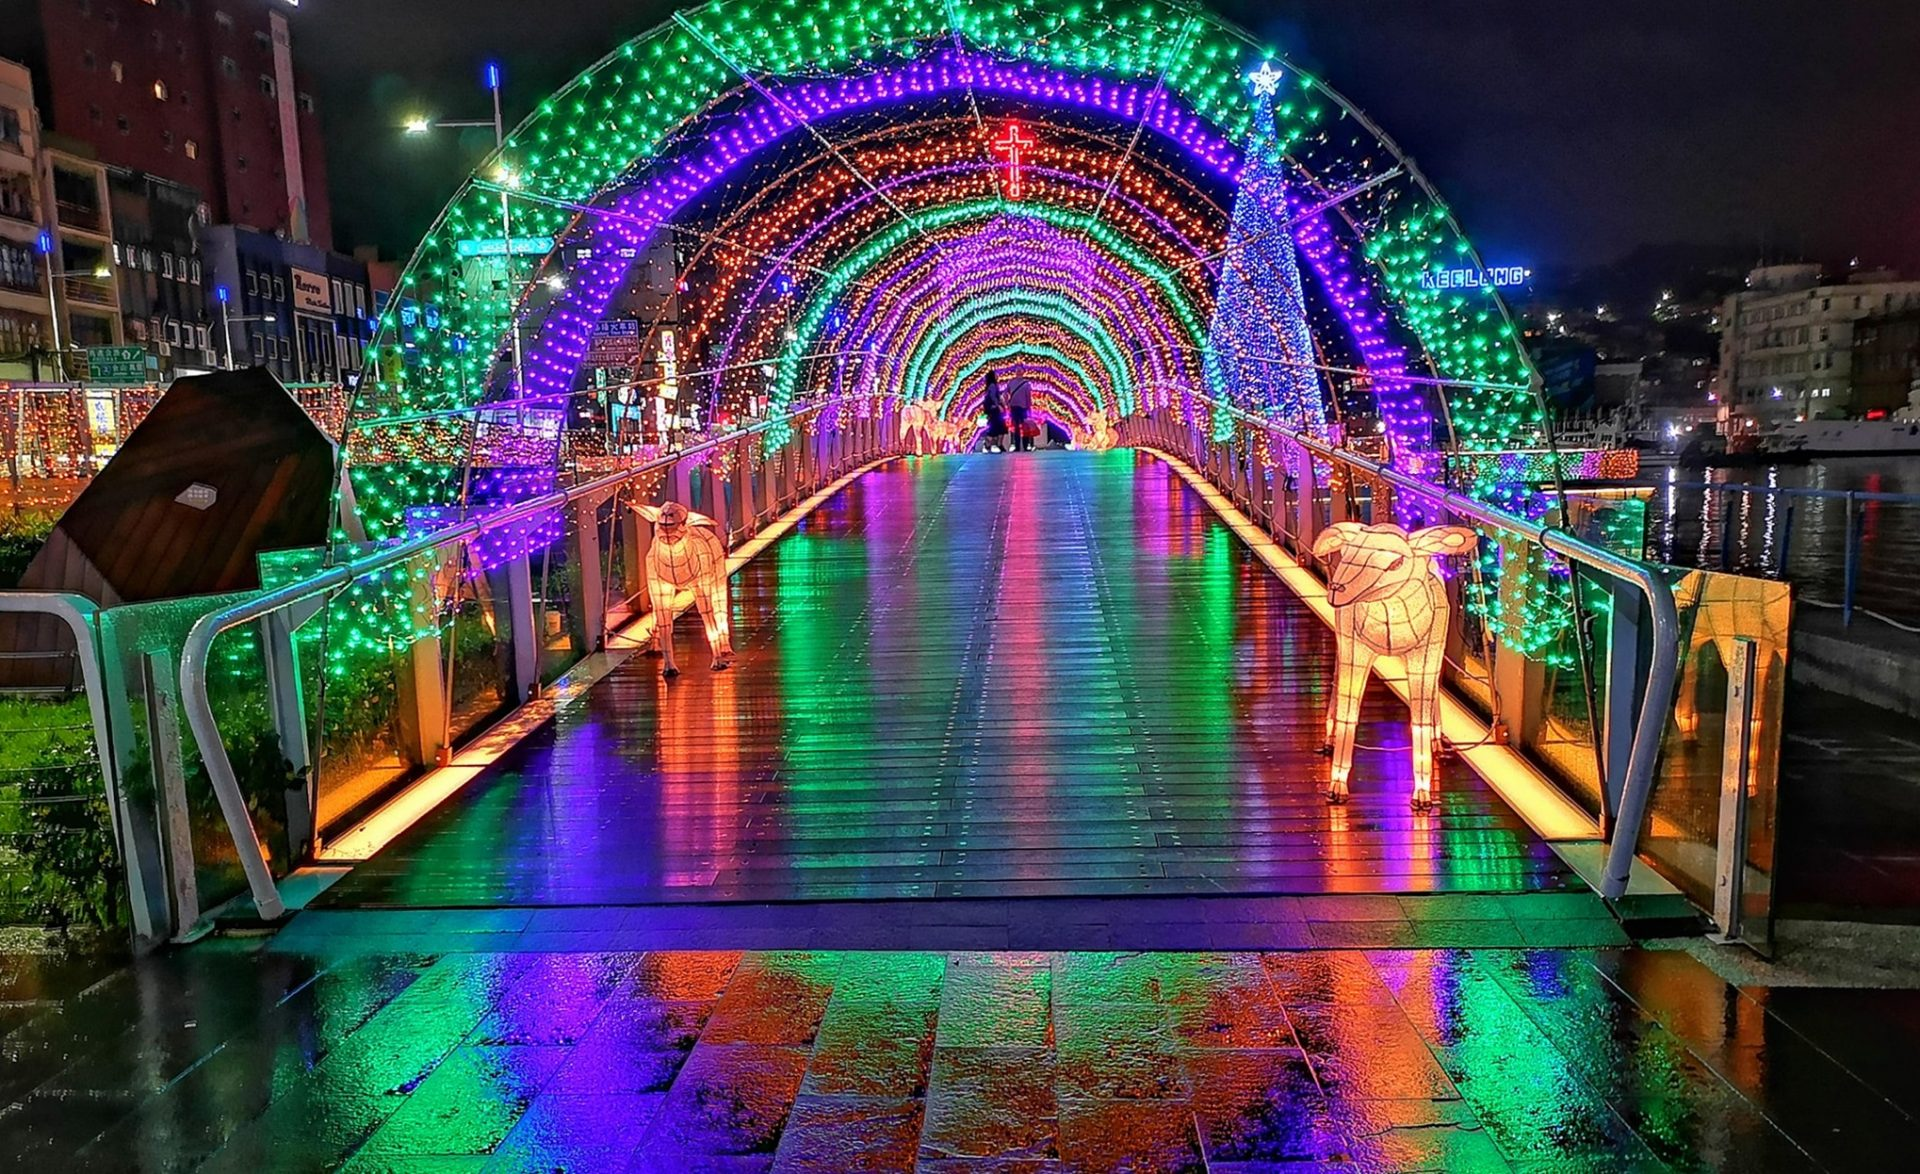 A Christmas light tunnel and other art installations are set up at the Keelung Maritime Plaza (基隆海洋廣場) in Northern Taiwan's Keelung City.l. (Image: courtesy of Xing-Mei in Keelung)